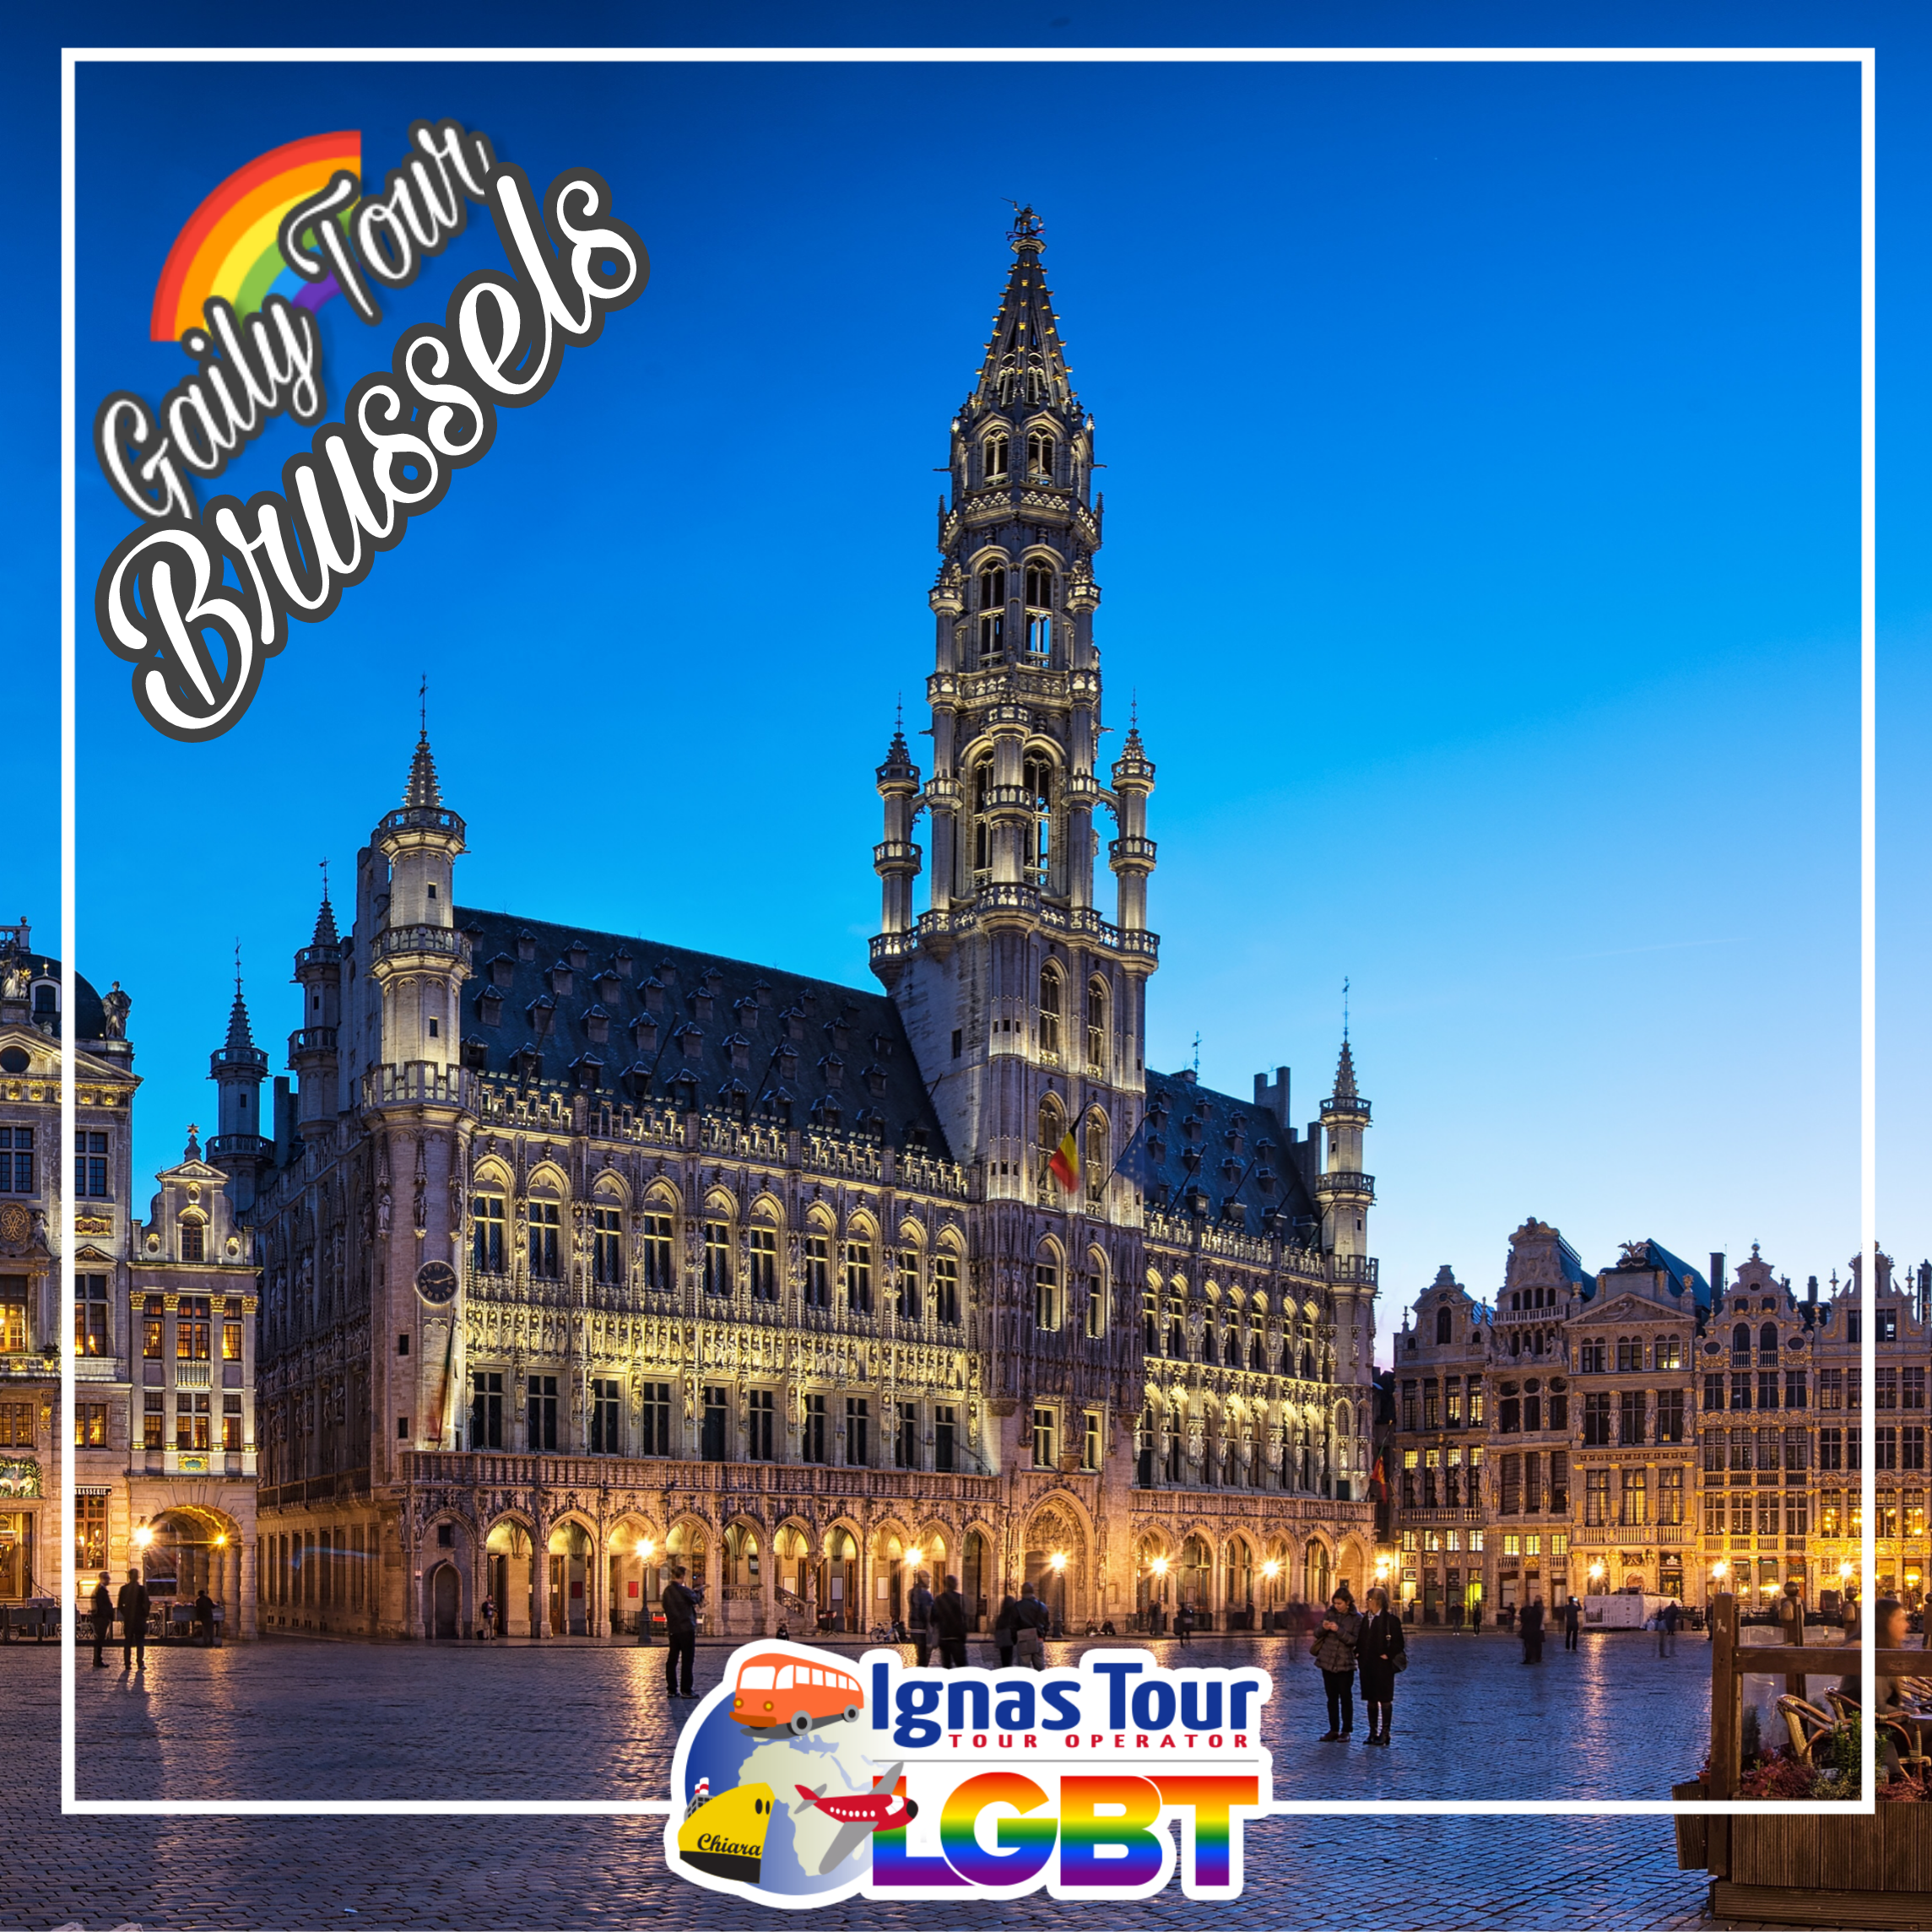 Most of Brussels gay bars, clubs, saunas and shops are located in the city centre along and around t